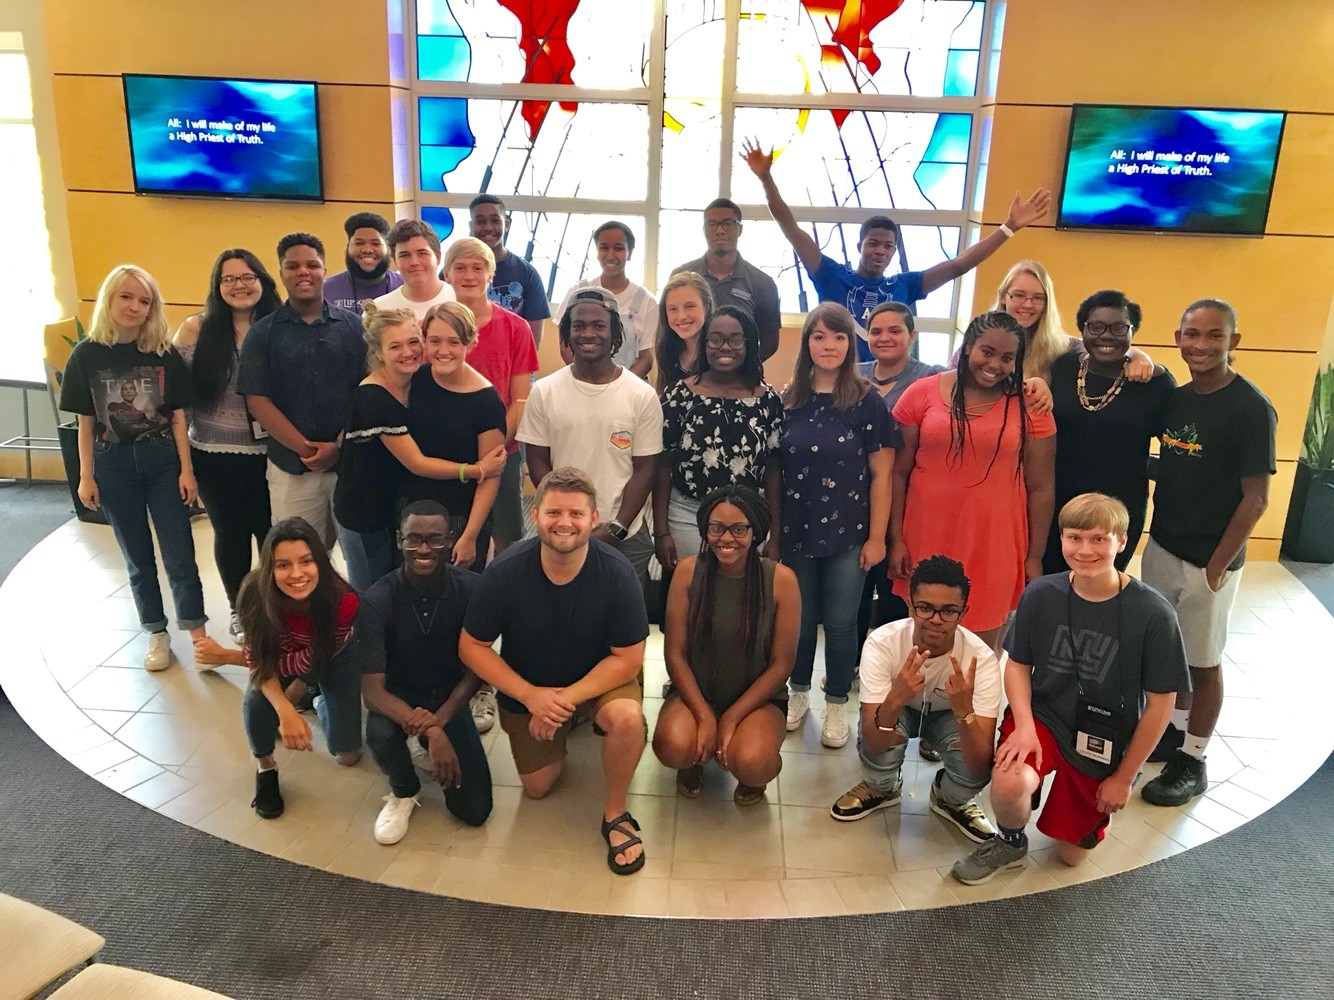 After ten days of crying together, laughing together and discussing  issues such as racism, diversity and Civil Rights, the participants of Engage had a hard time saying goodbye. This final photo together was taken at the closing ceremony.